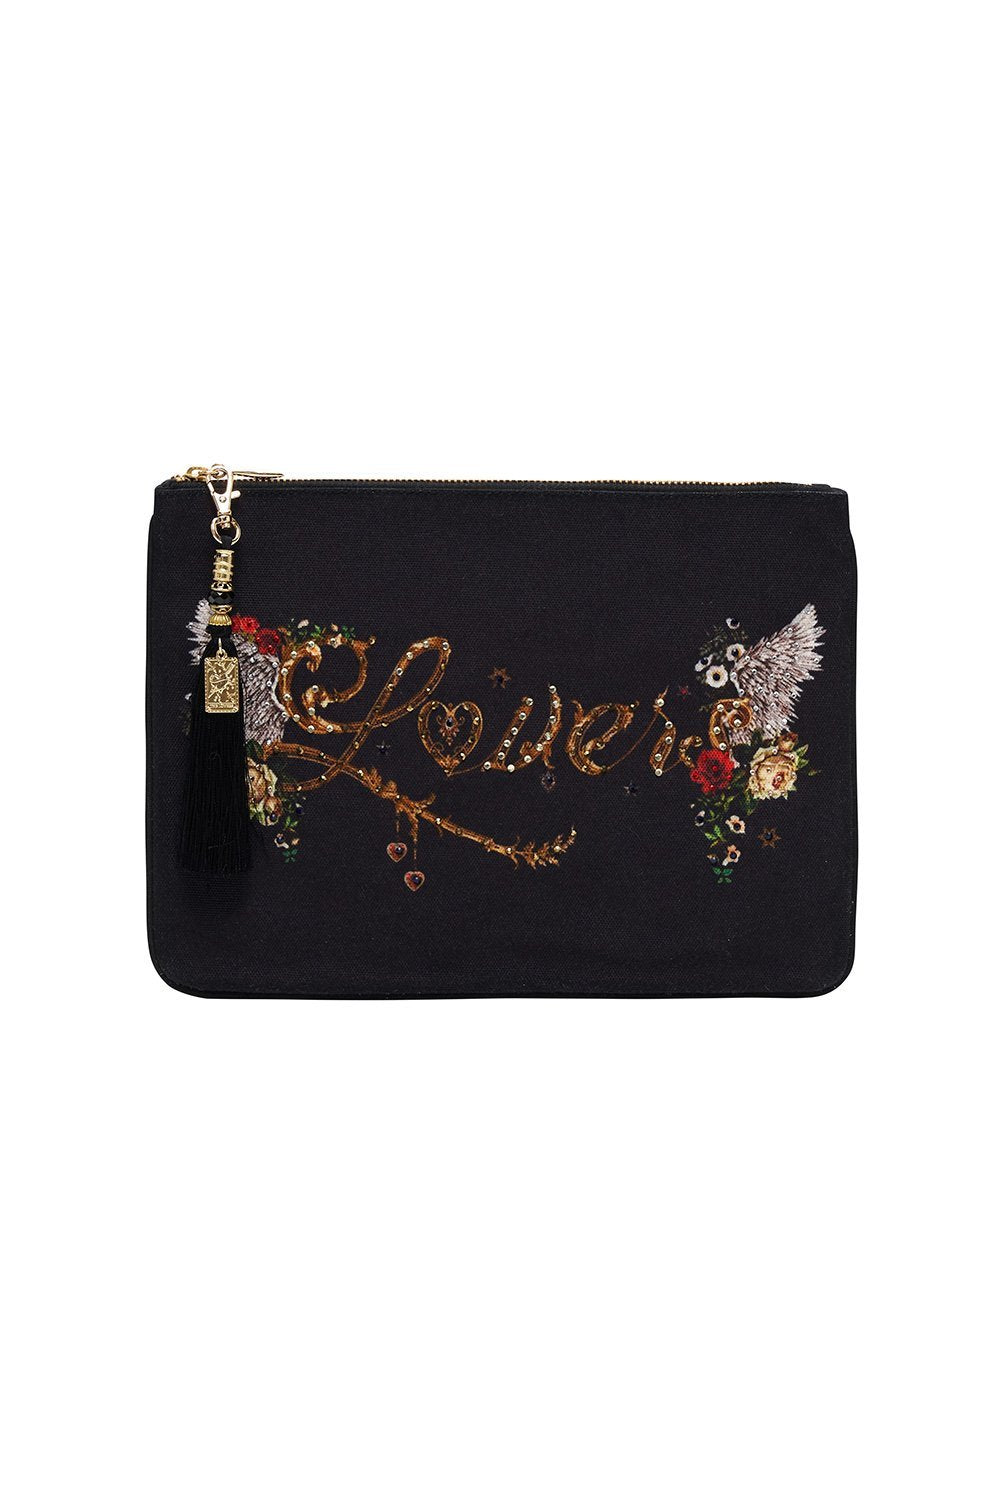 SMALL CANVAS CLUTCH SOLID BLACK